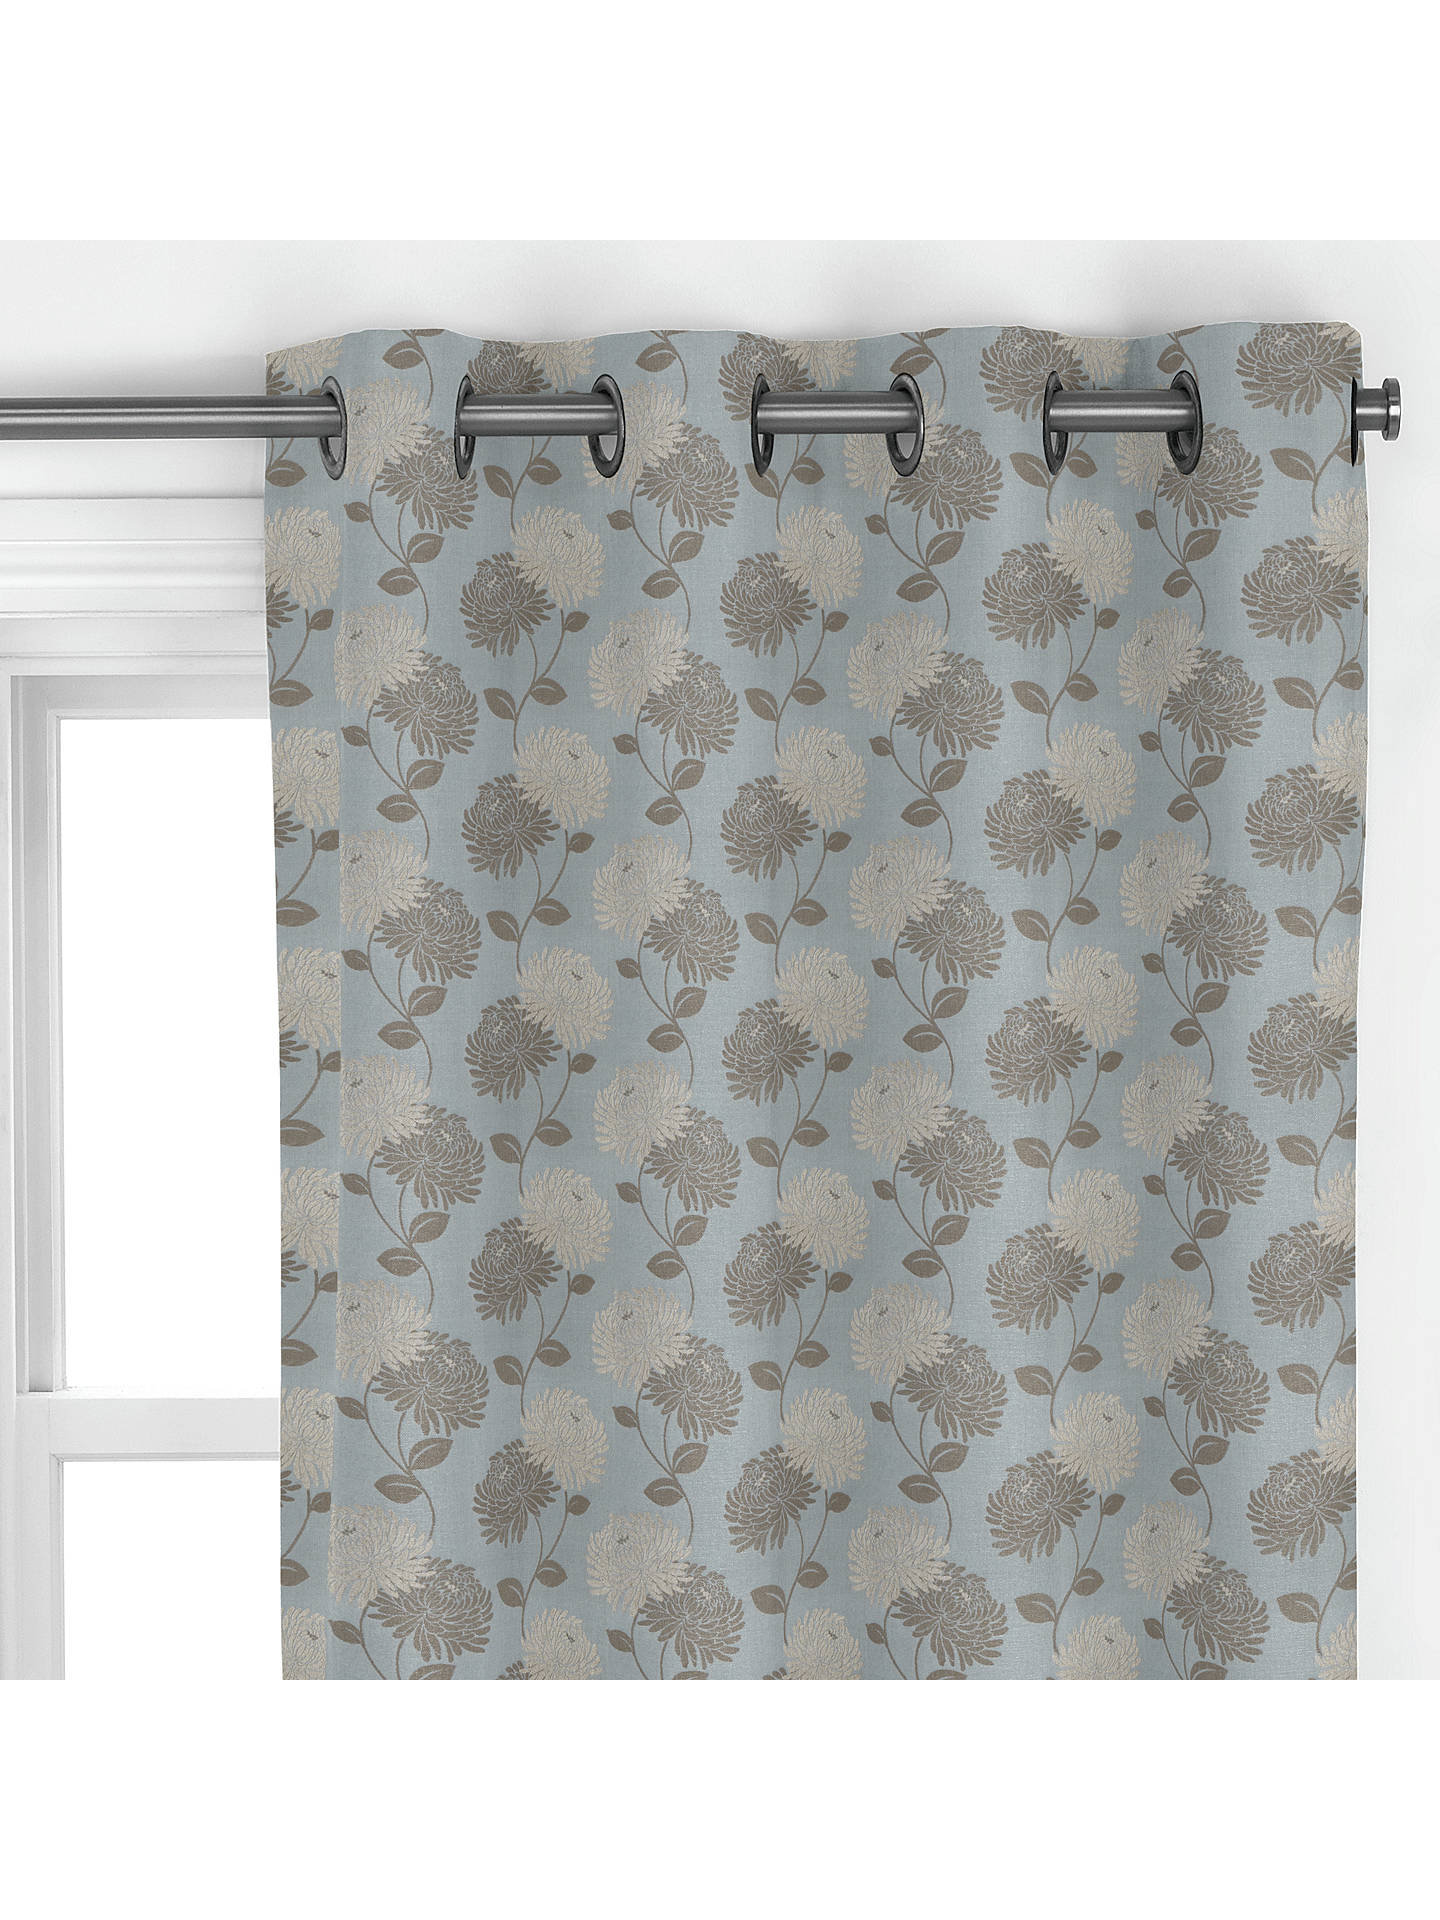 BuyMaggie Levien for John Lewis Chrysanthe Weave Curtain, Duck Egg Online at johnlewis.com